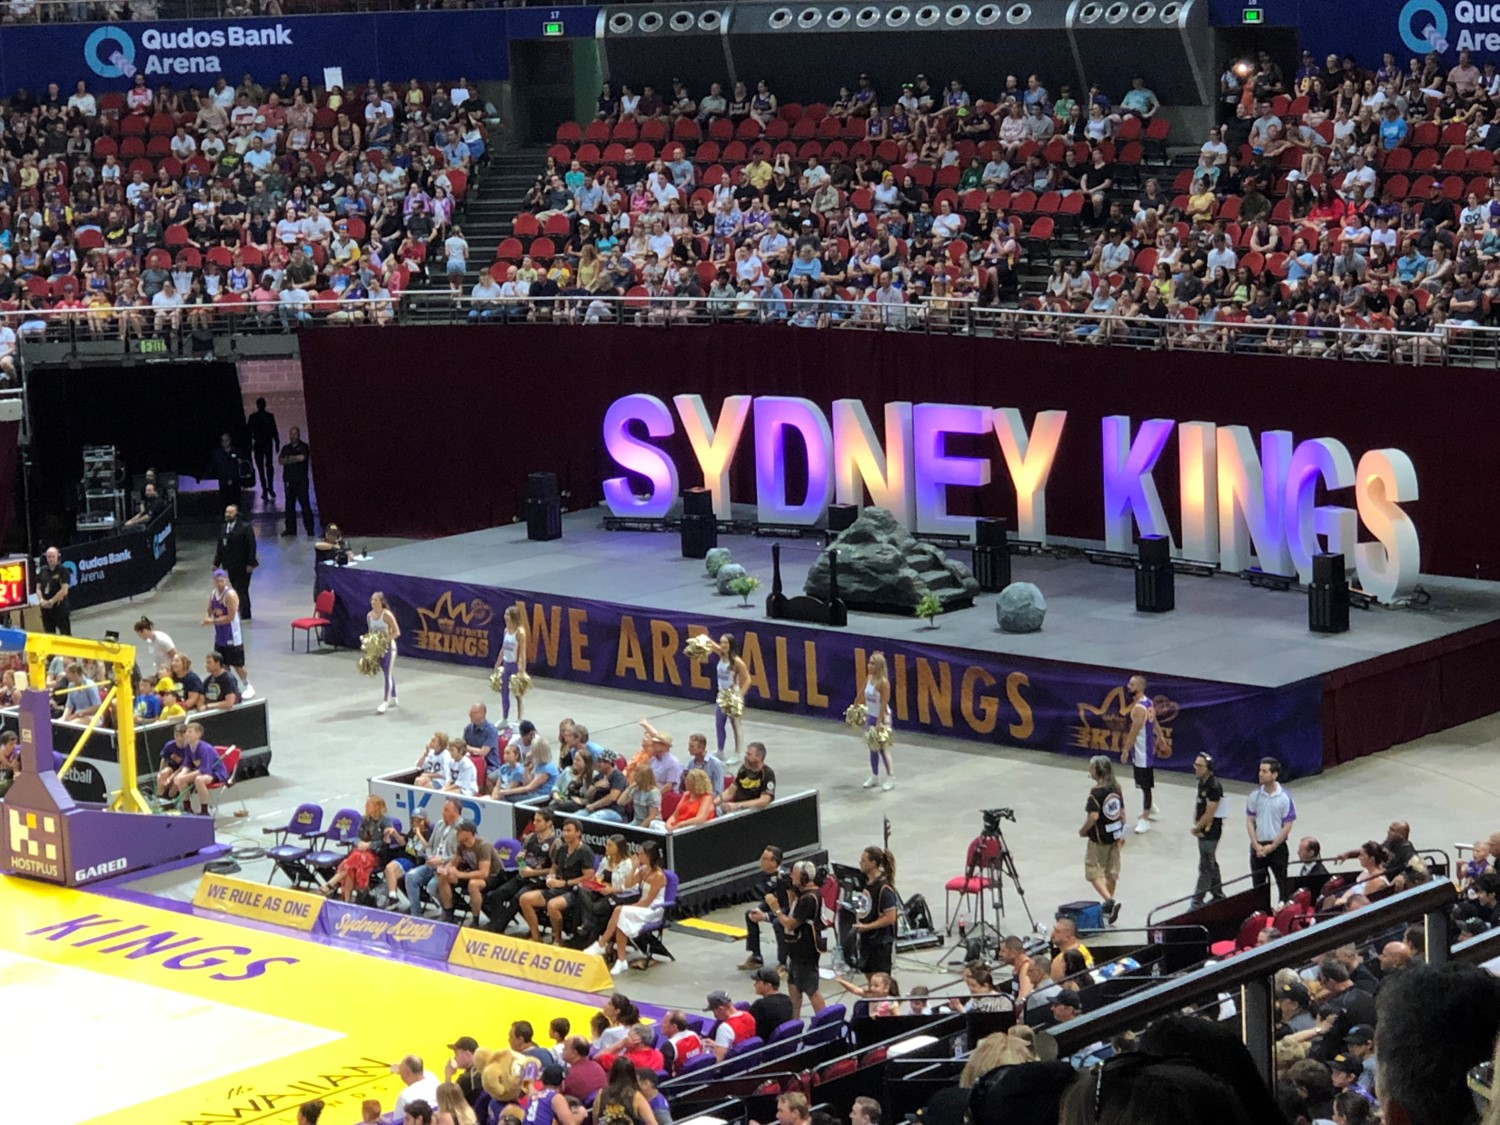 qudos bank arena sydney kings stadium journey. Black Bedroom Furniture Sets. Home Design Ideas